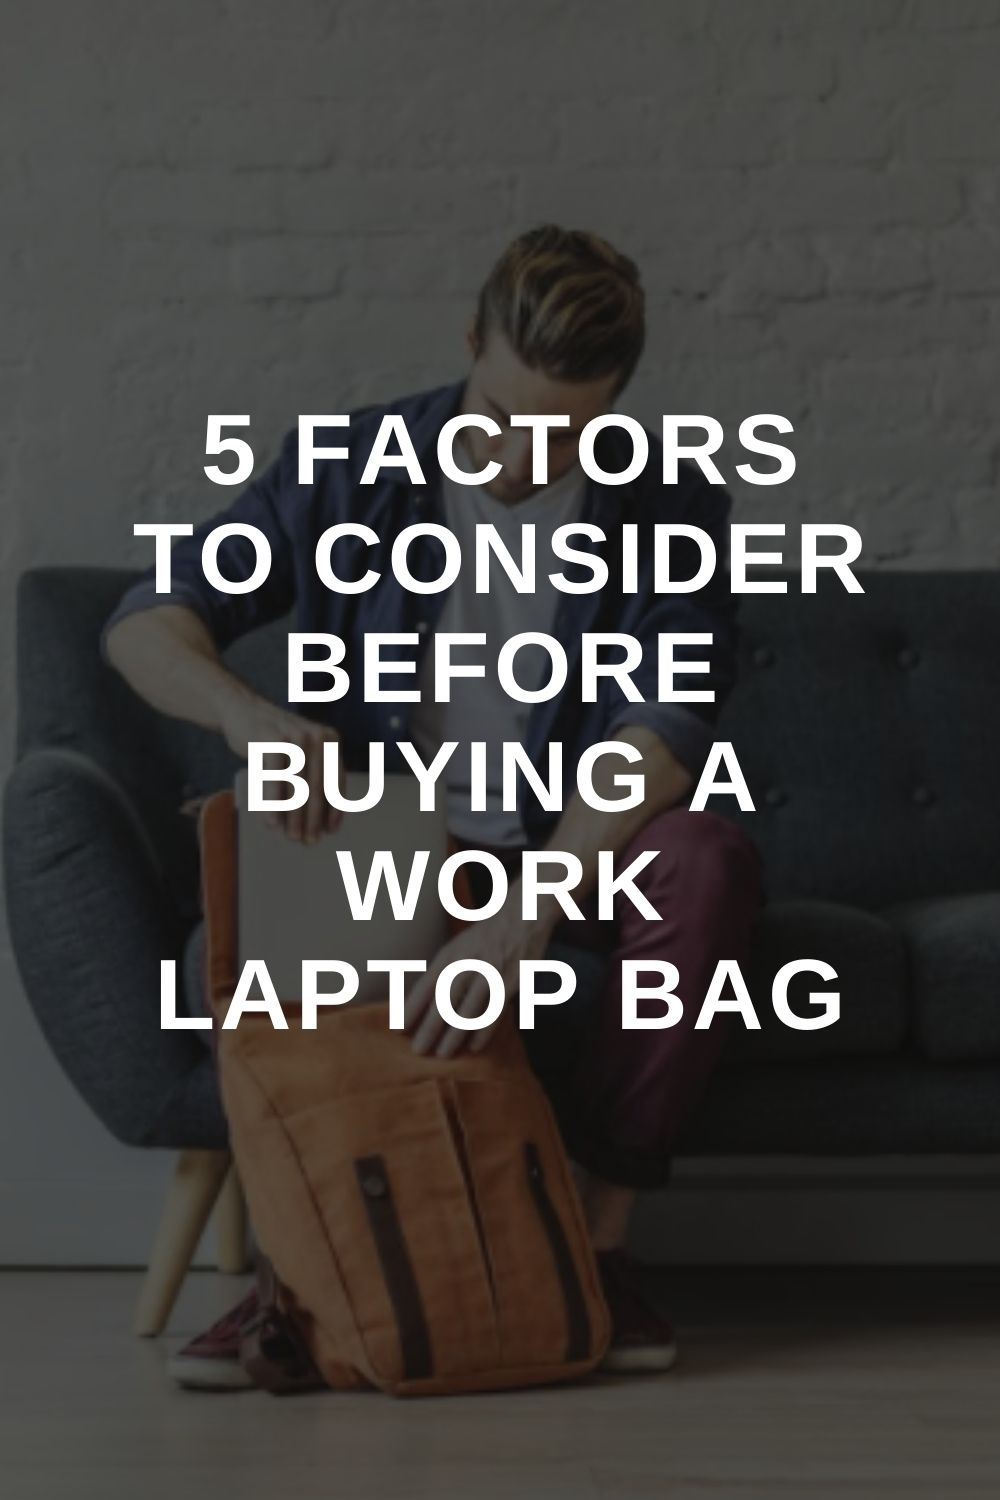 5 Factors To Consider Before Buying A Work Laptop Bag